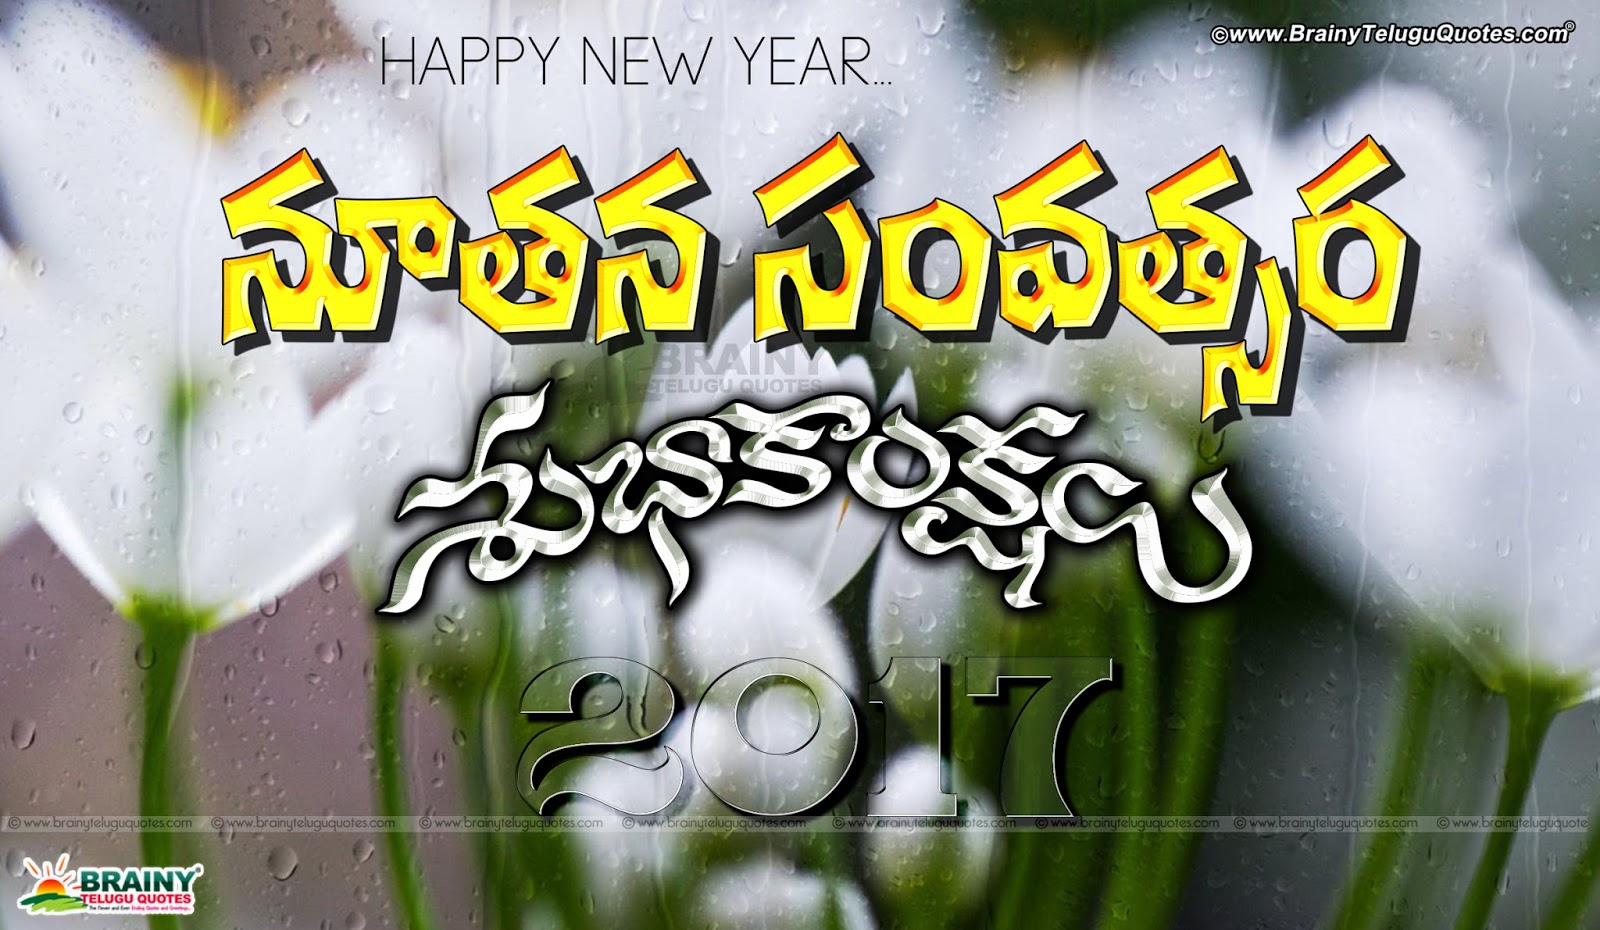 Happy new year 2017 telugu latest wallpapers greetings kavitalu here is happy new year telugu latest wallpapers greetings kavitalu telugu new year greetings kristyandbryce Gallery